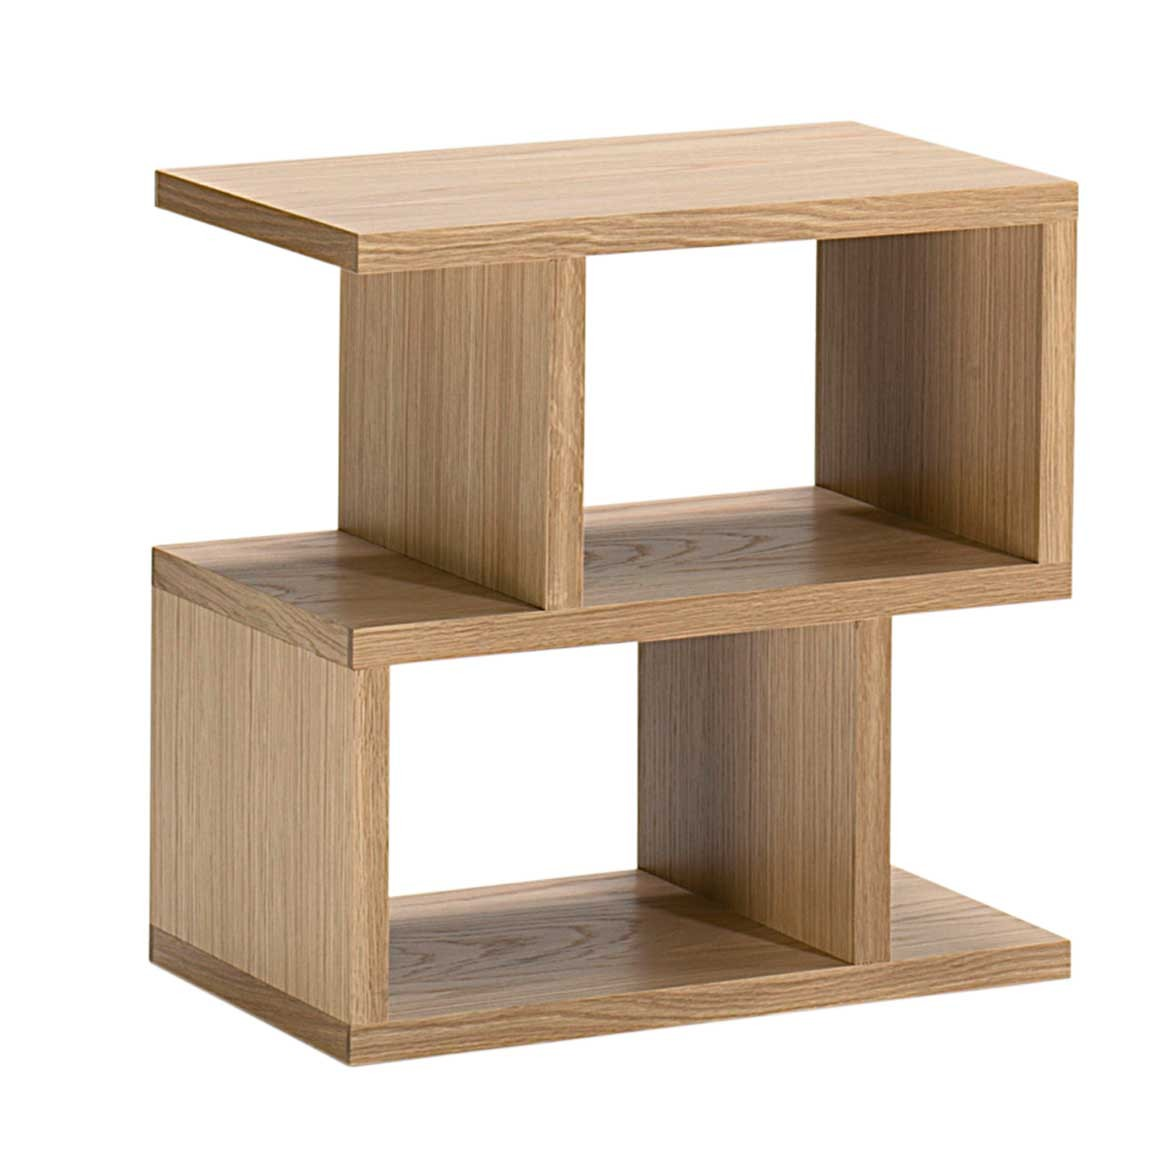 Modern bookshelf side table hpd397 side table al habib for Latest side table designs